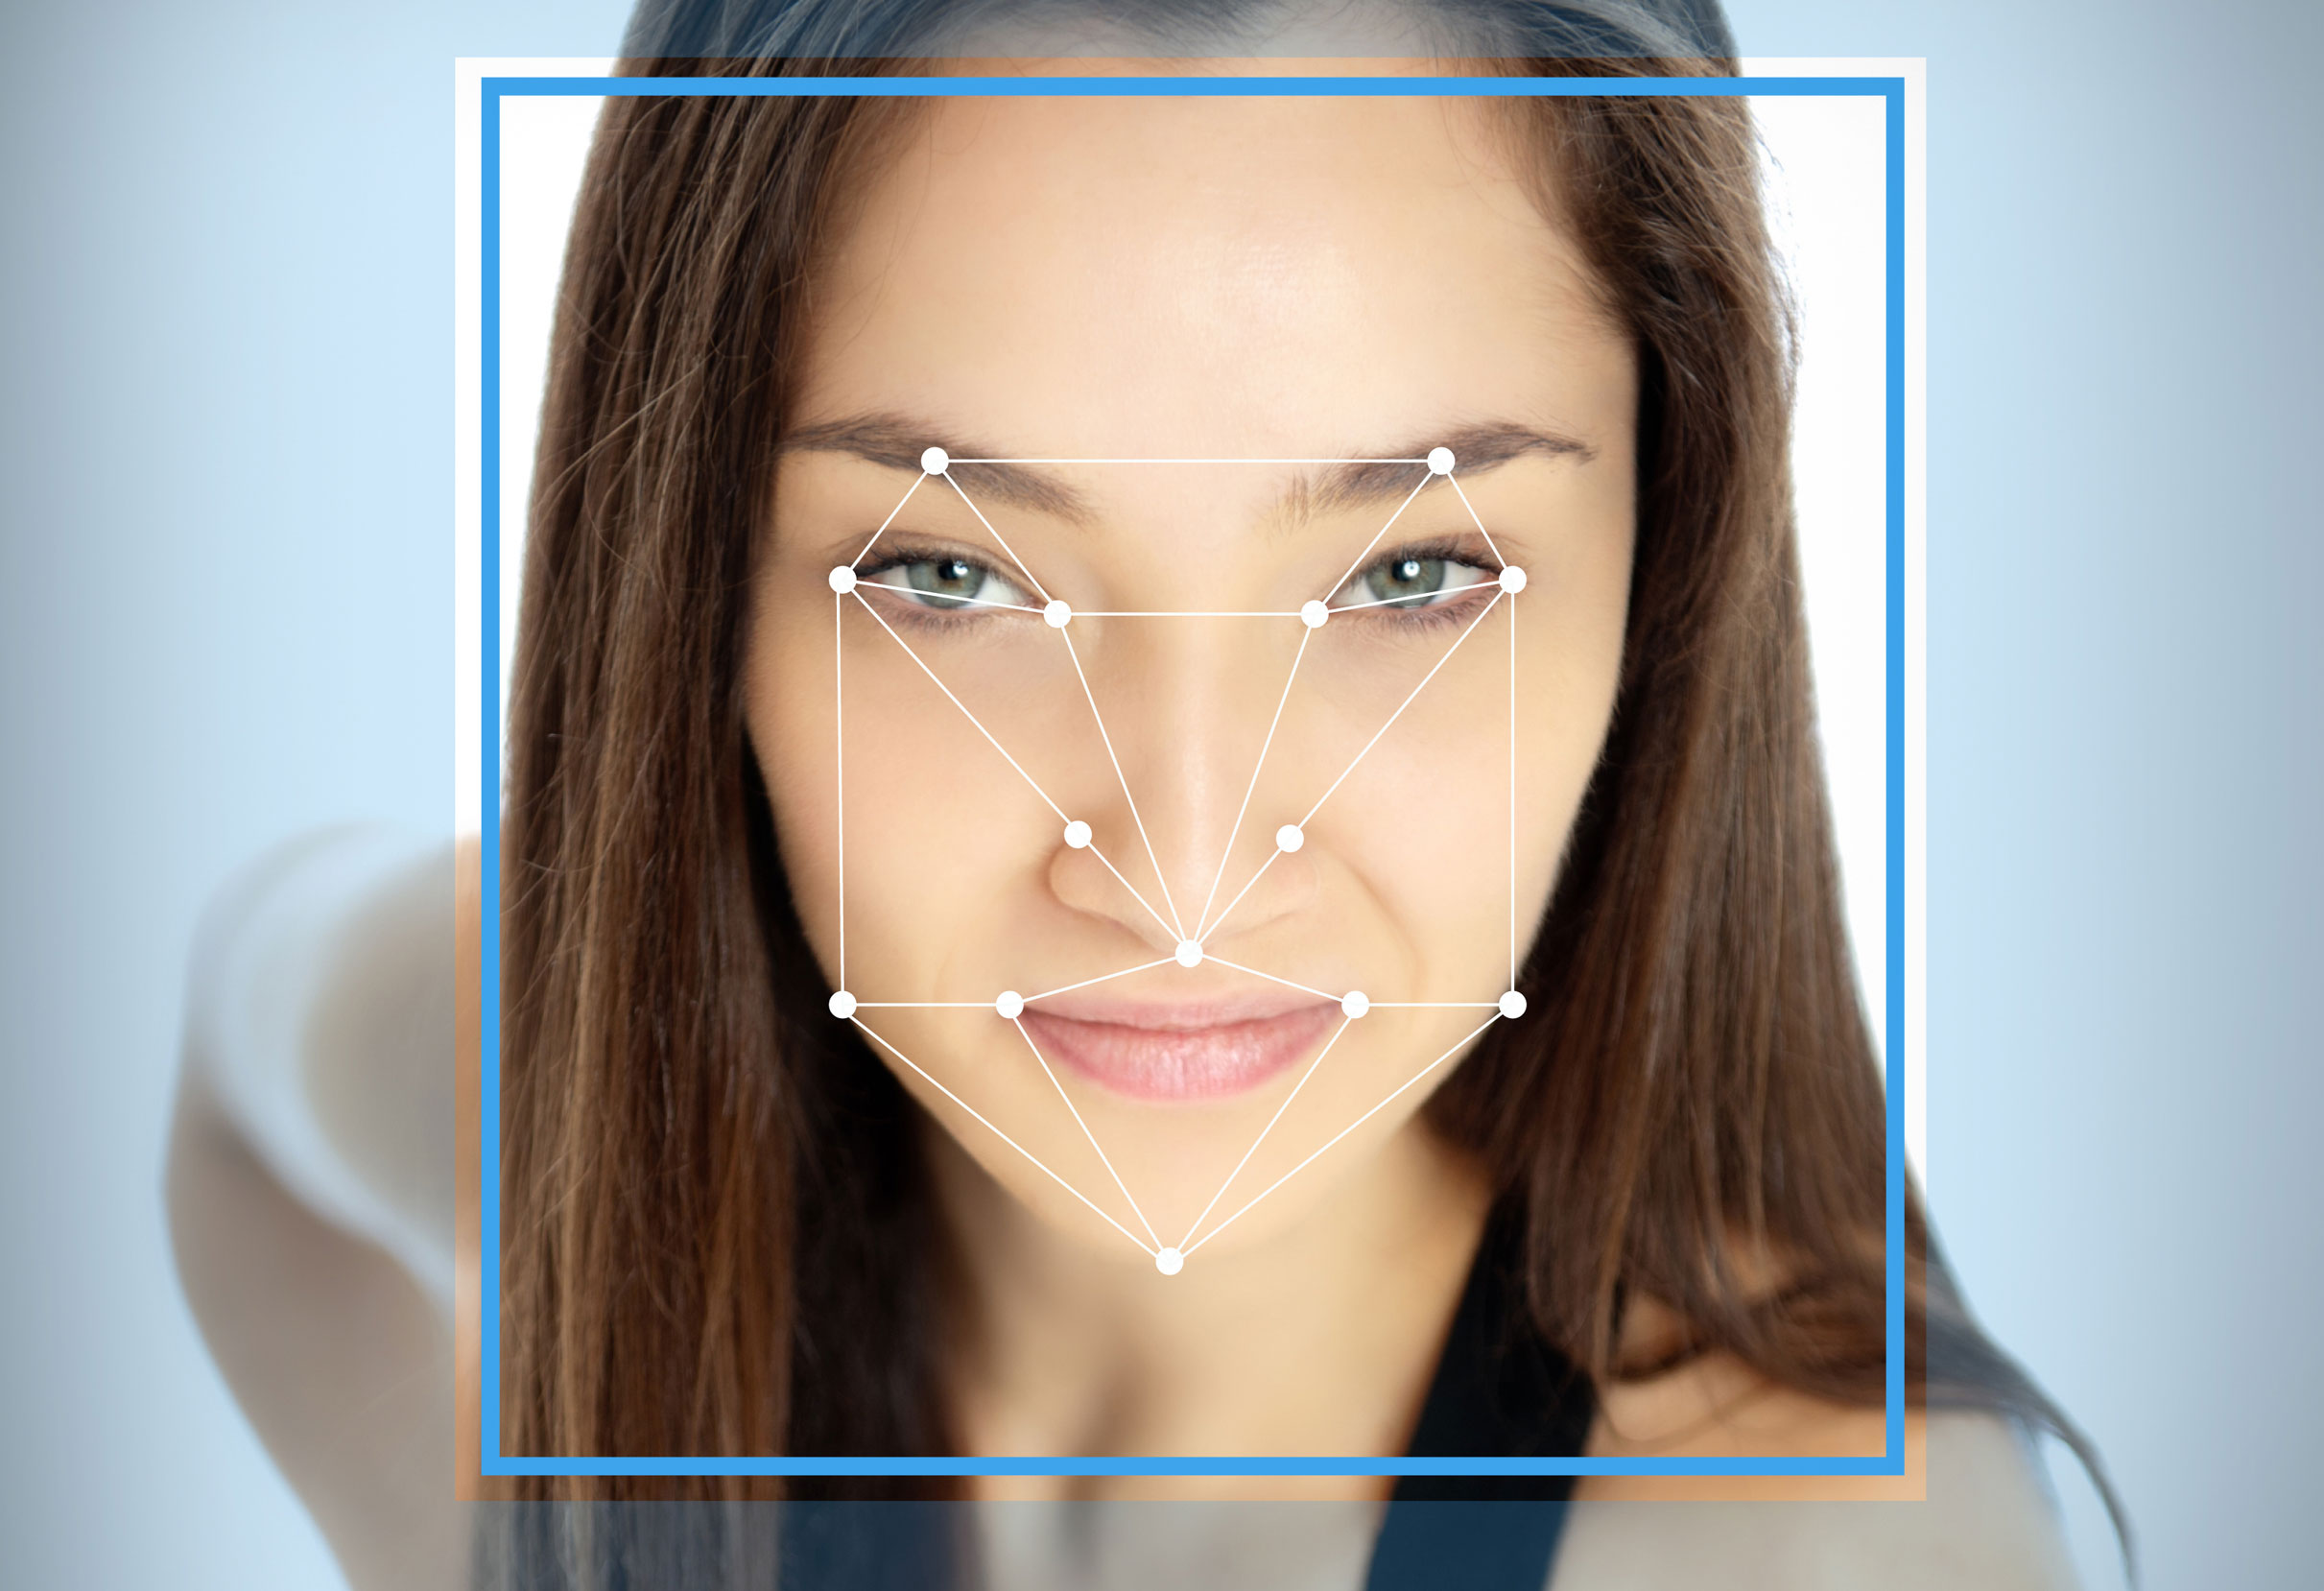 Extremely fast facial recognition software